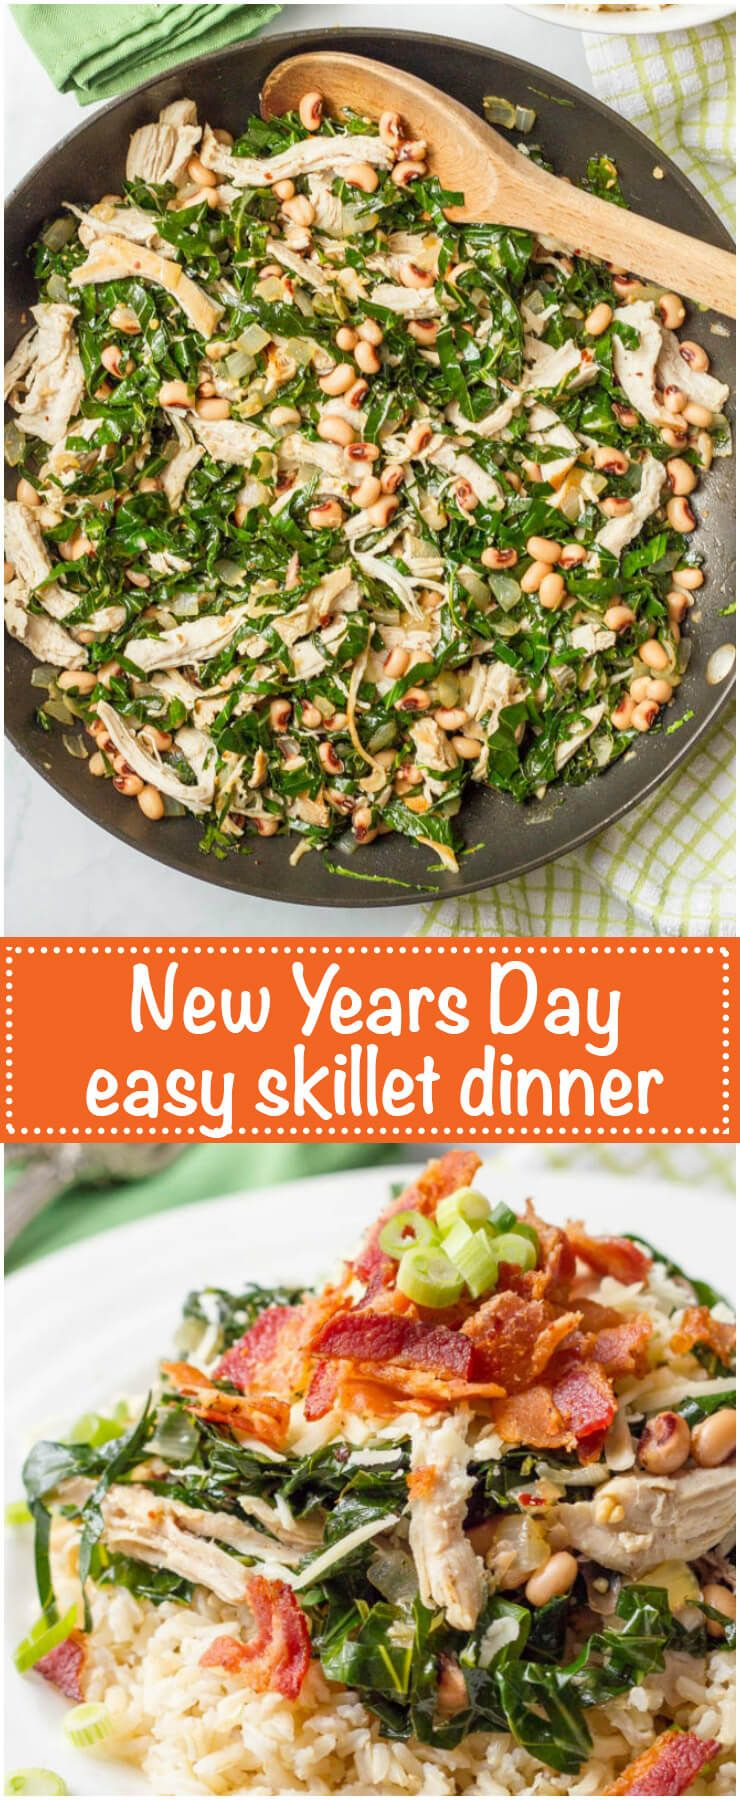 Southern New Year's Day dinner skillet Recipe Recipes